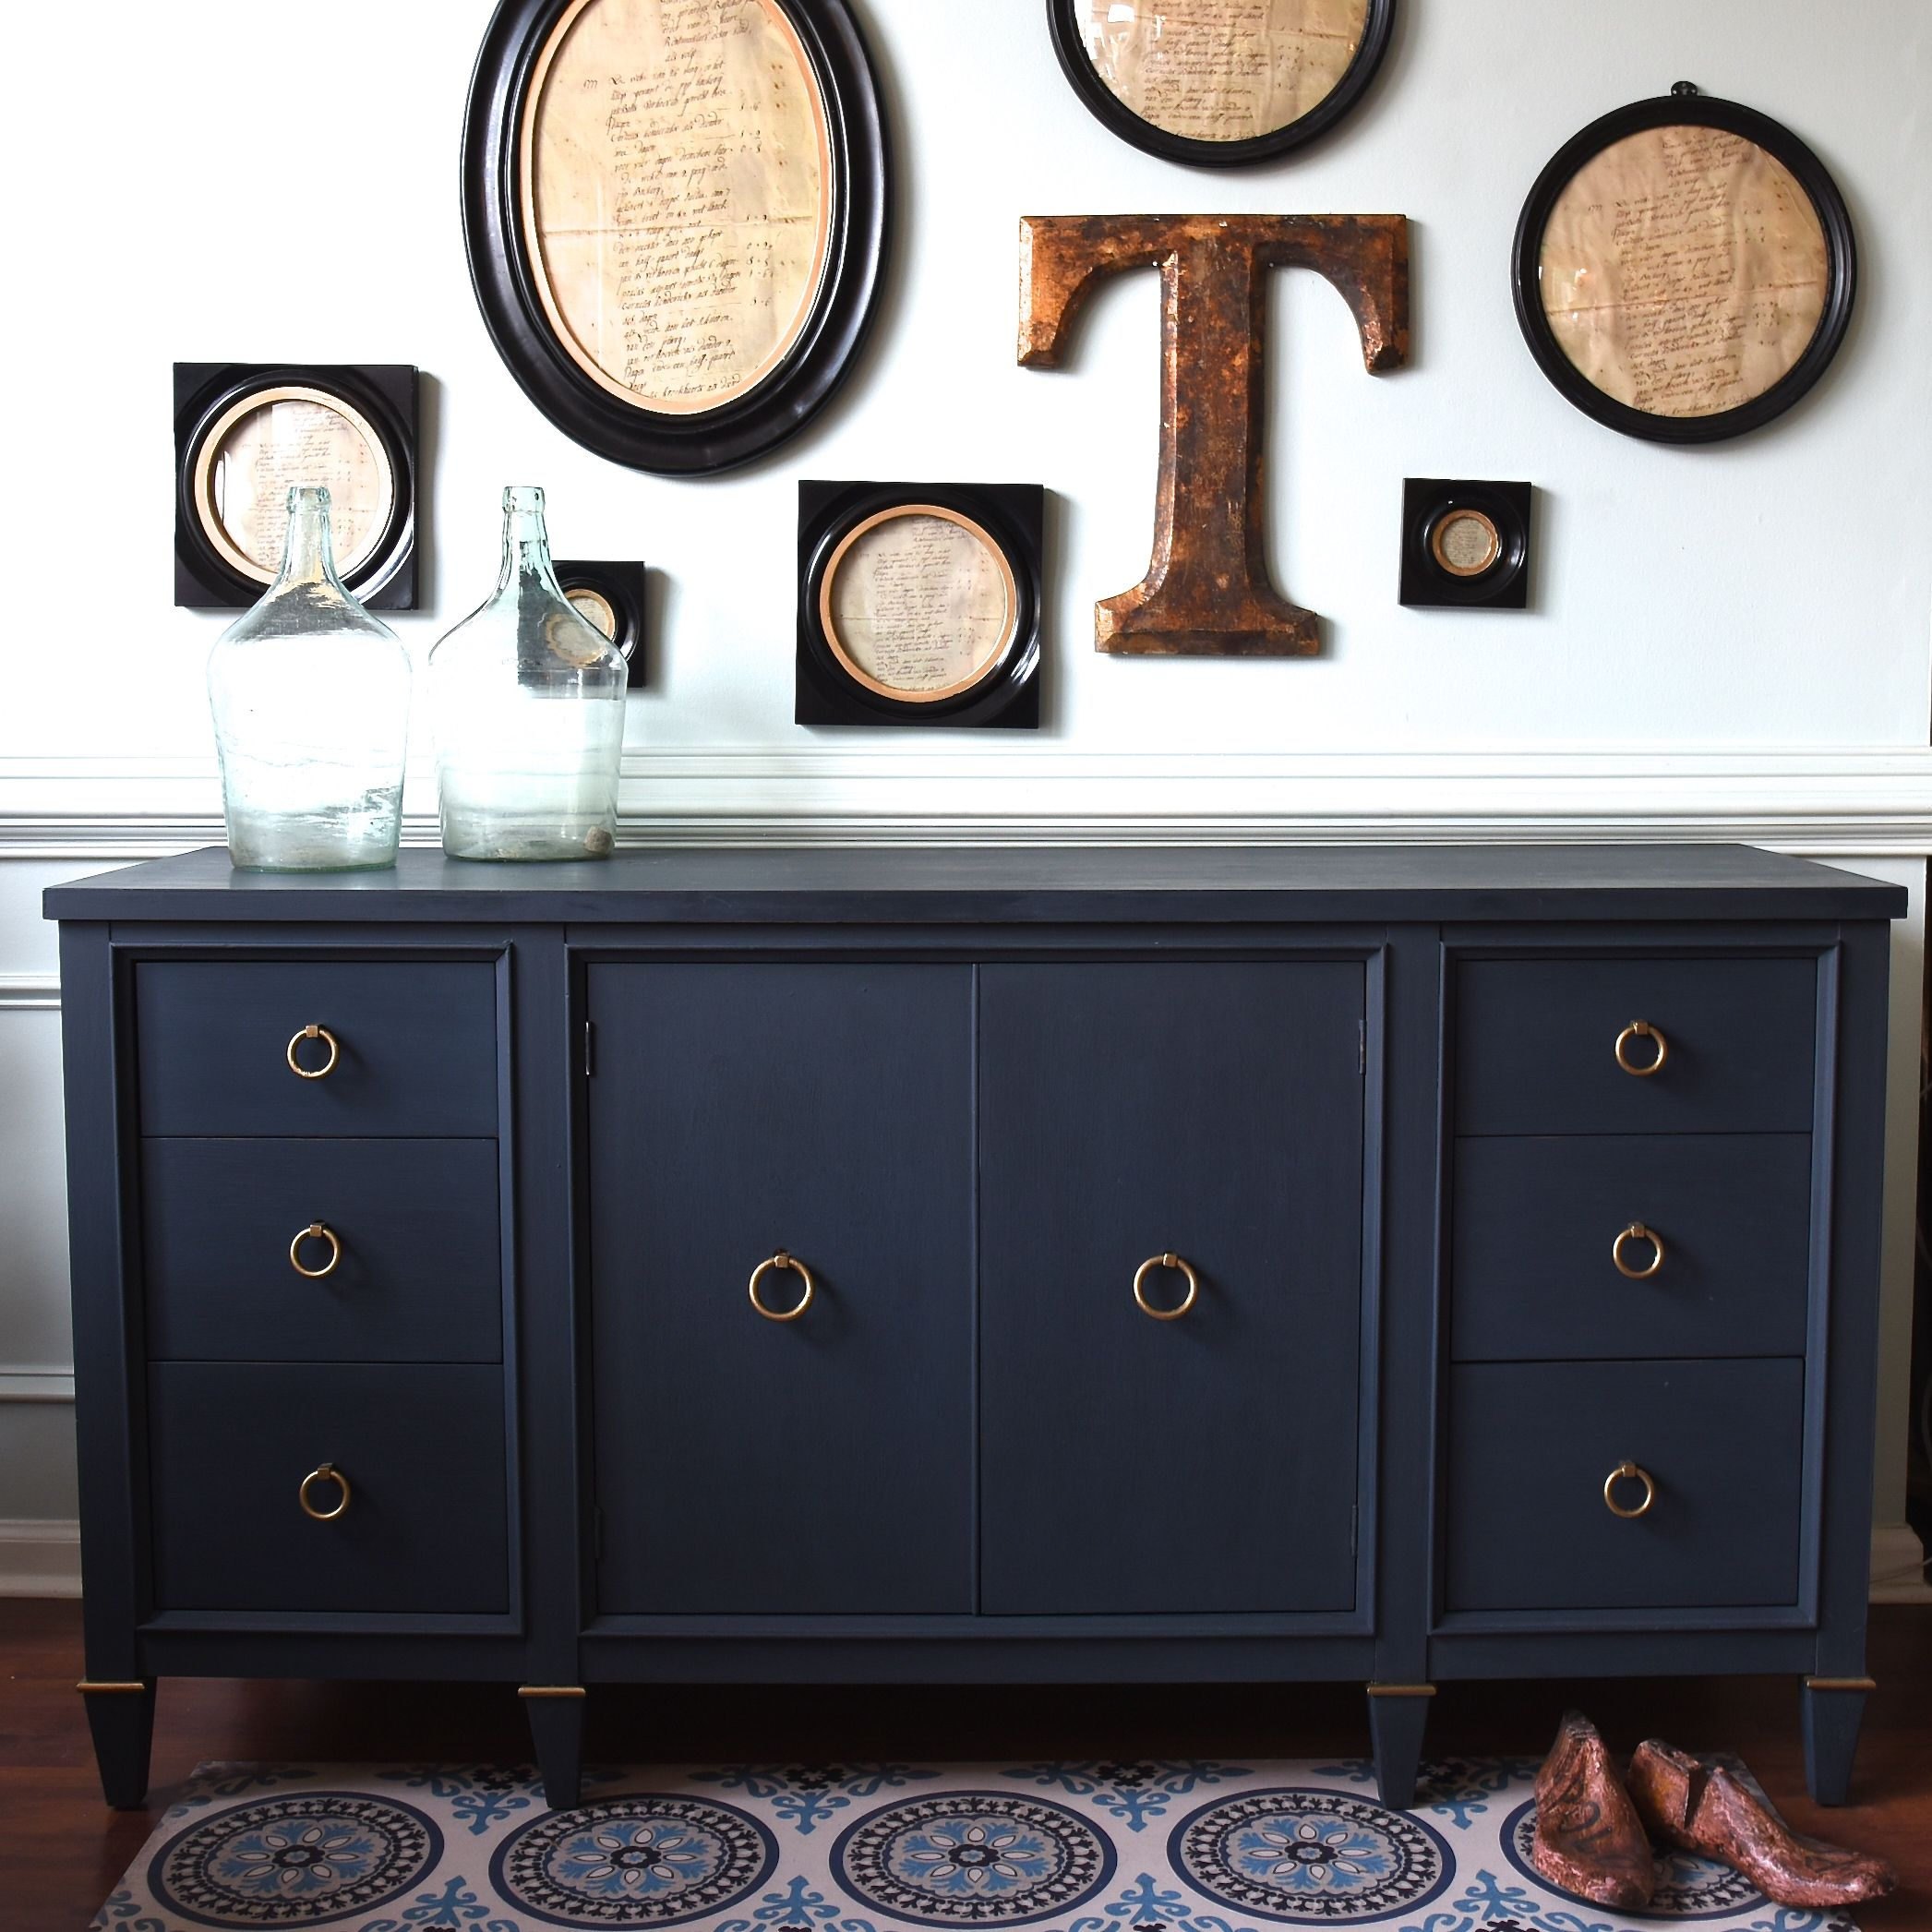 We Mixed Cobalt Blue Dark Gray To Achieve This Blue But You Can